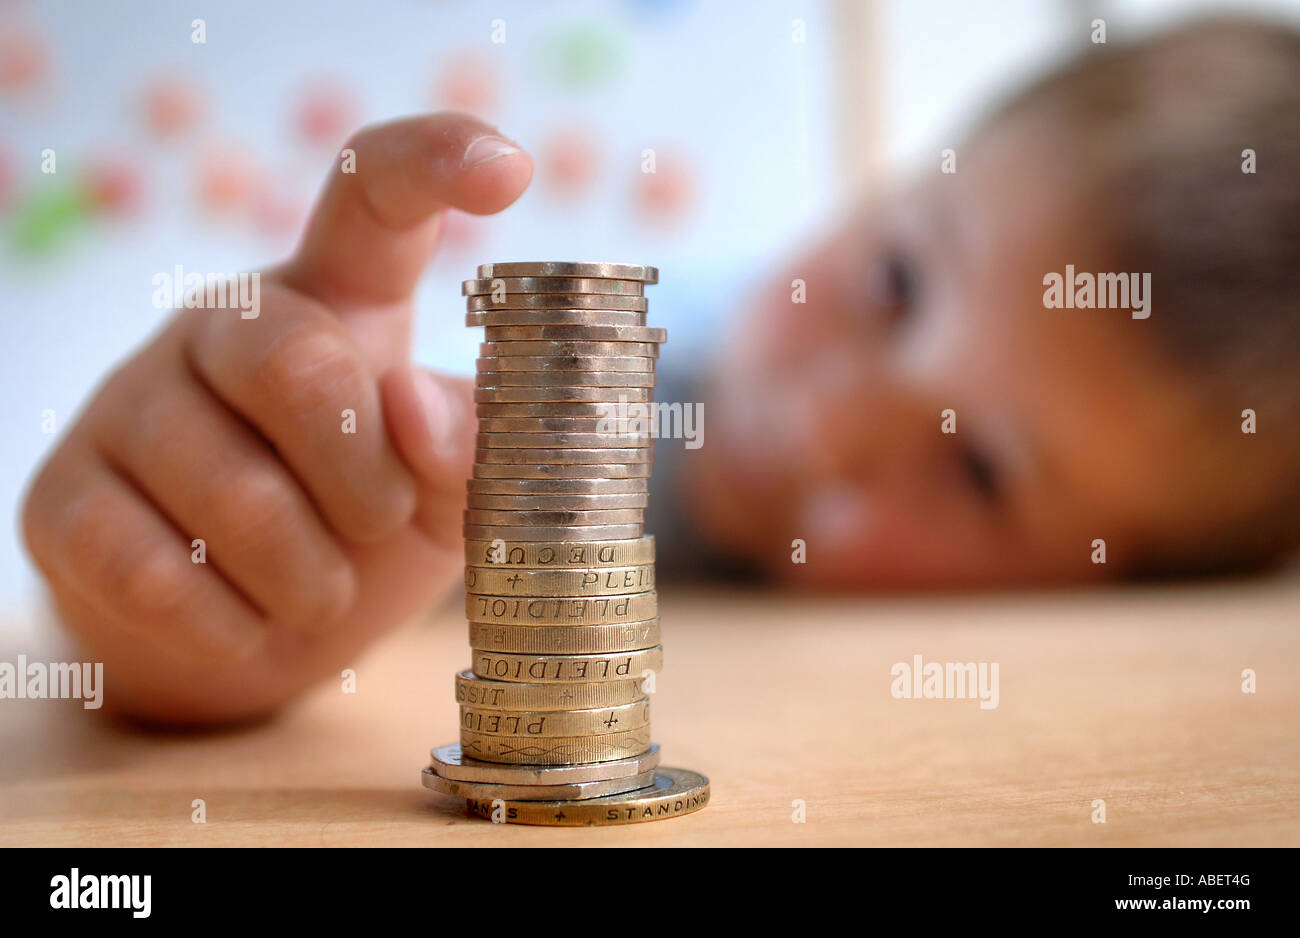 A young boy pictured with a stack of coins sat at a desk. - Stock Image